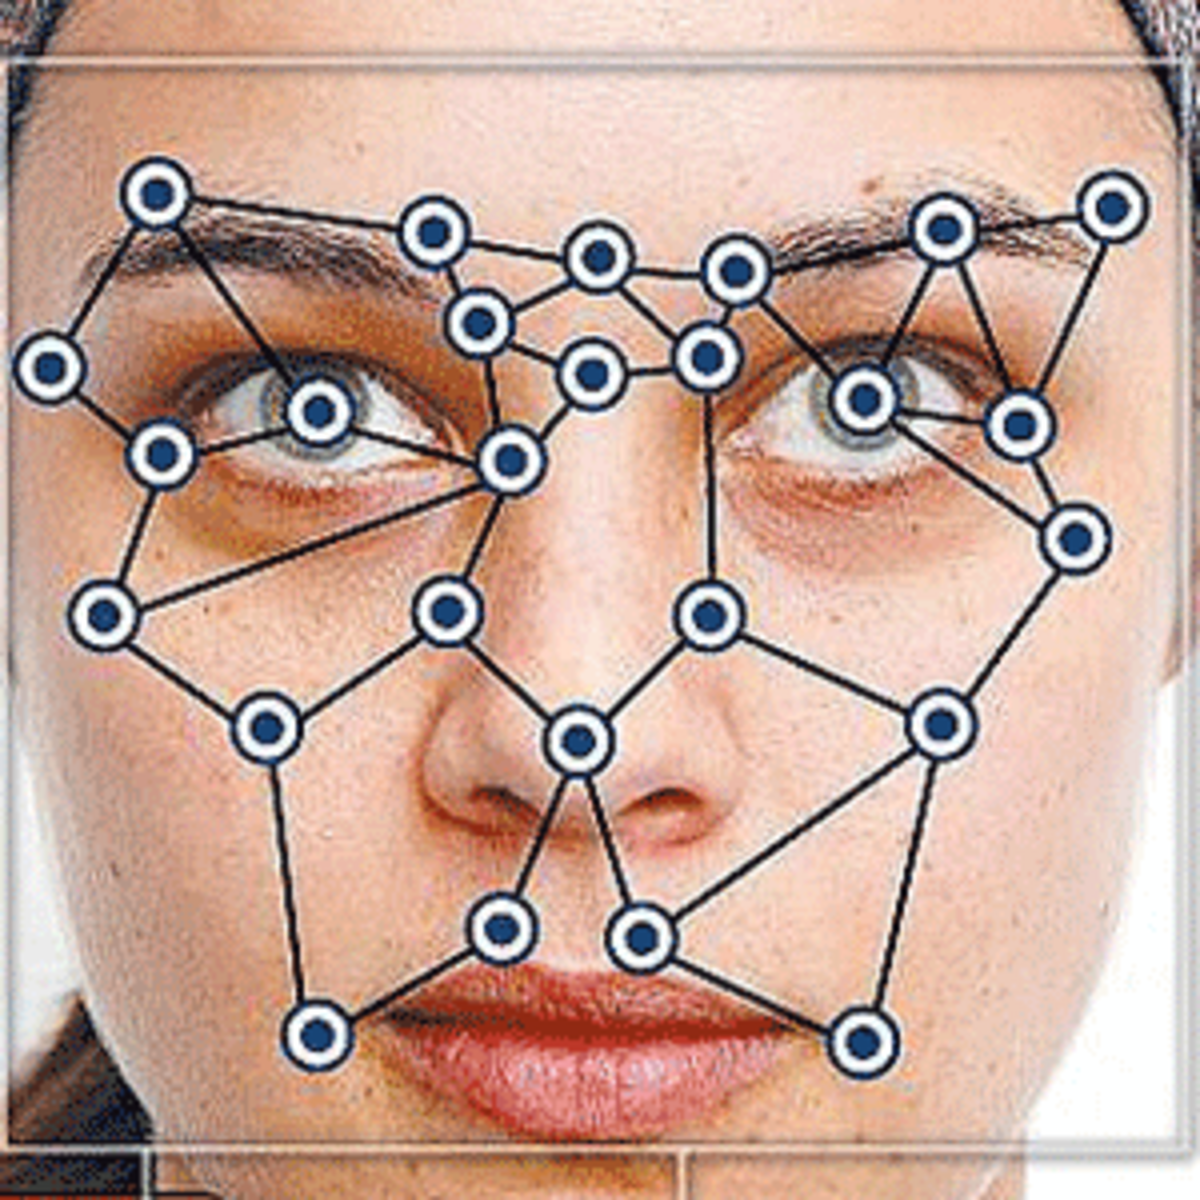 Recognition memory Facial psycology